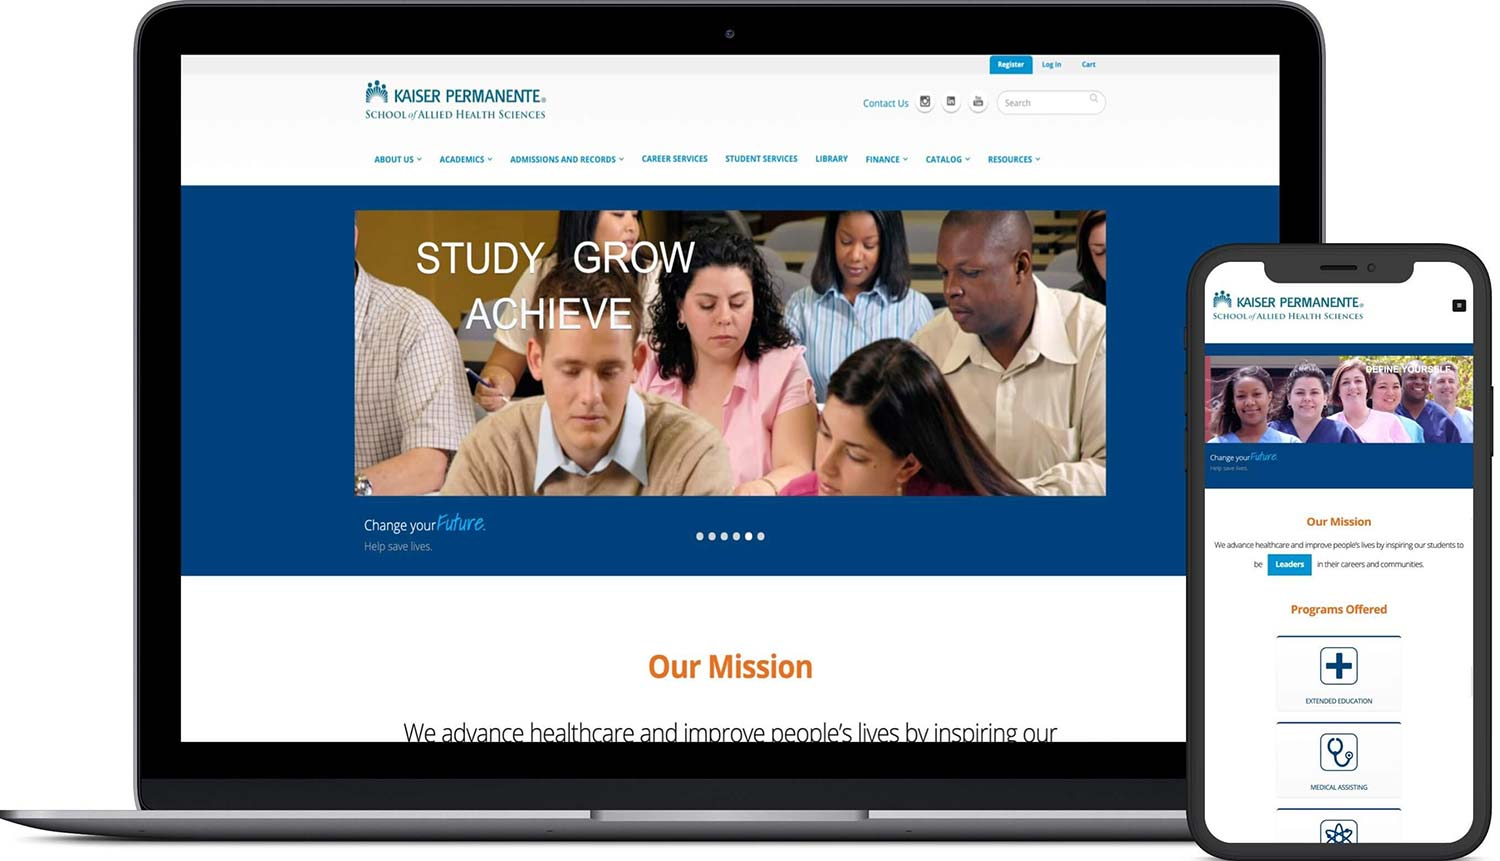 Kaiser Permanent School of Allied Health Sciences website screens on apple macbook laptop and iPhone X smartphone